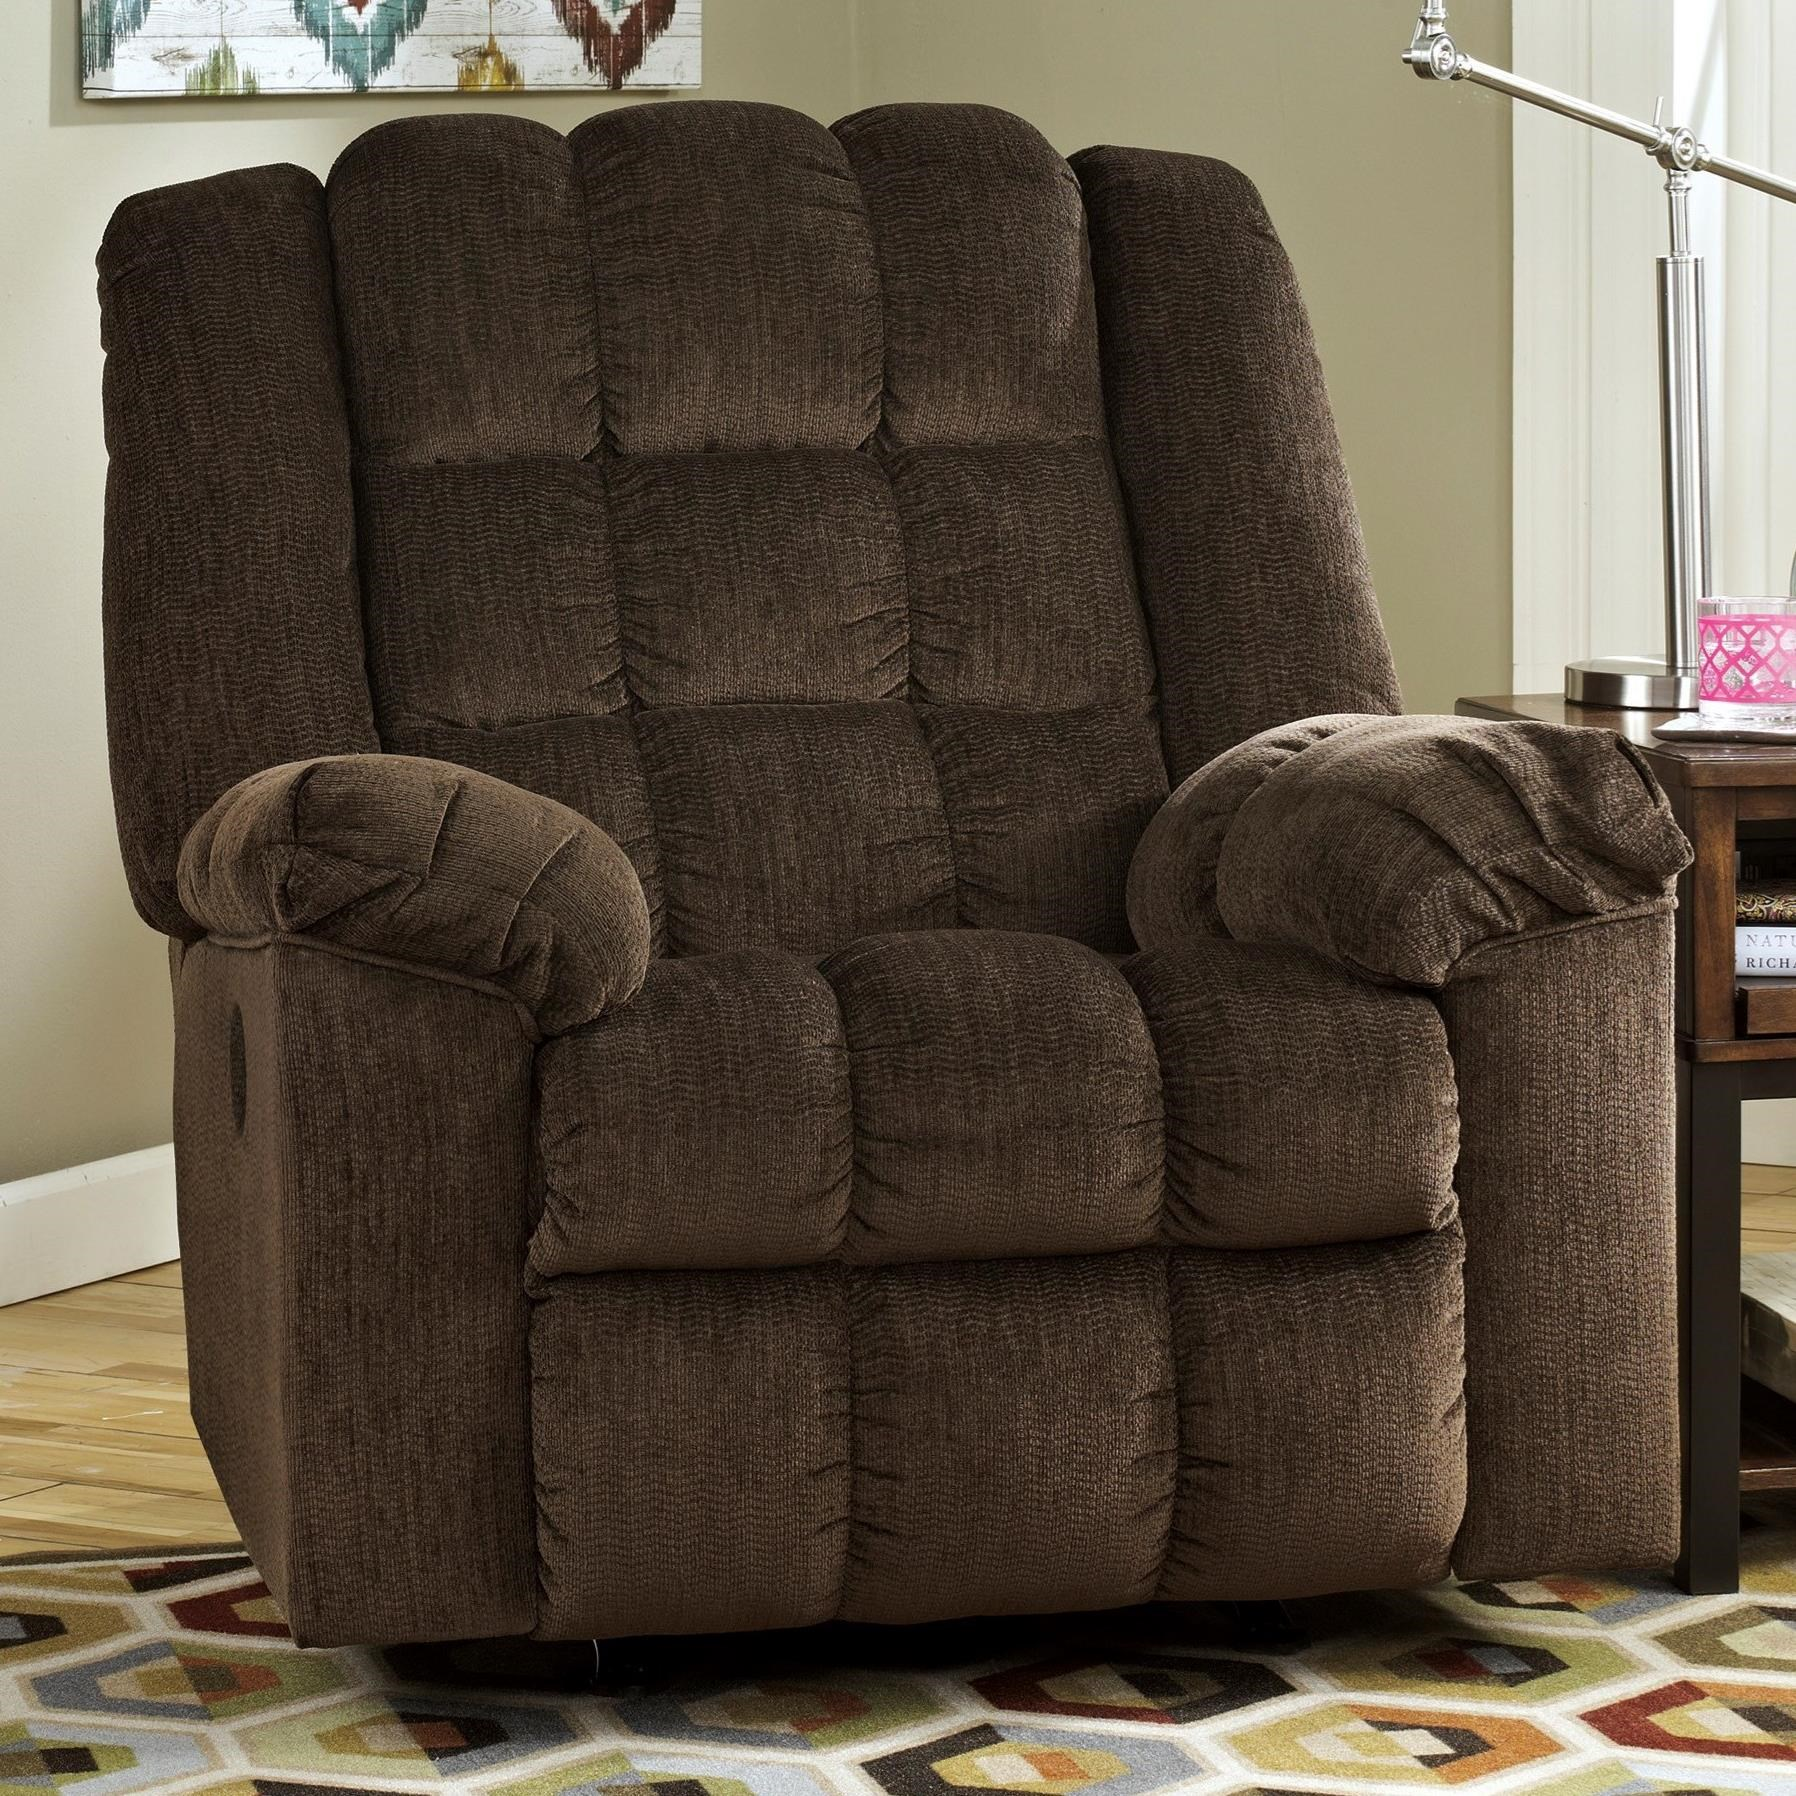 Ludden - Cocoa Power Rocker Recliner by Signature Design by Ashley at Household Furniture